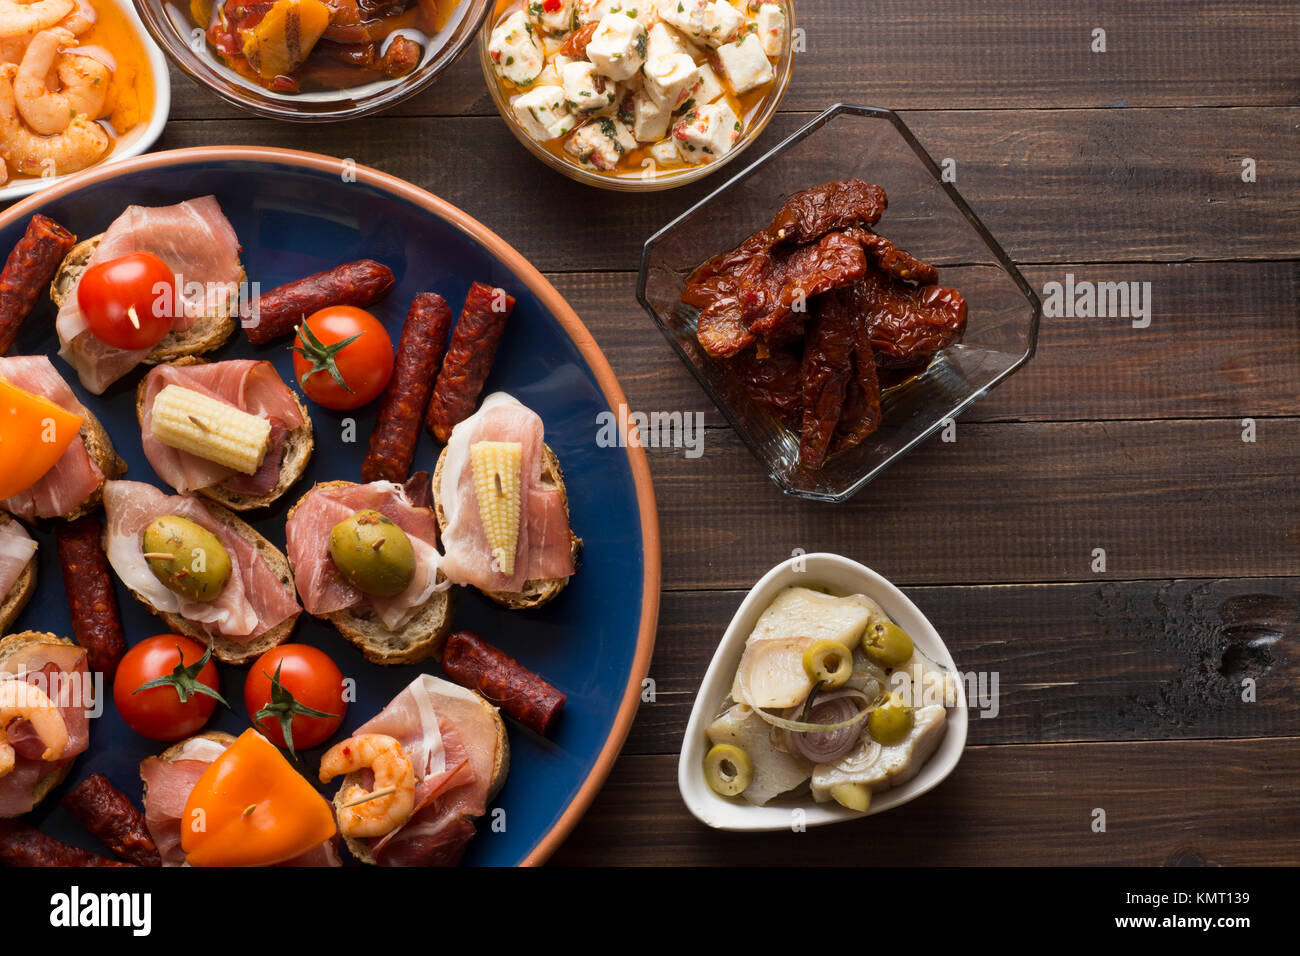 Sharing mixed spanish tapas starters on table. Top view. Copyspace - Stock Image